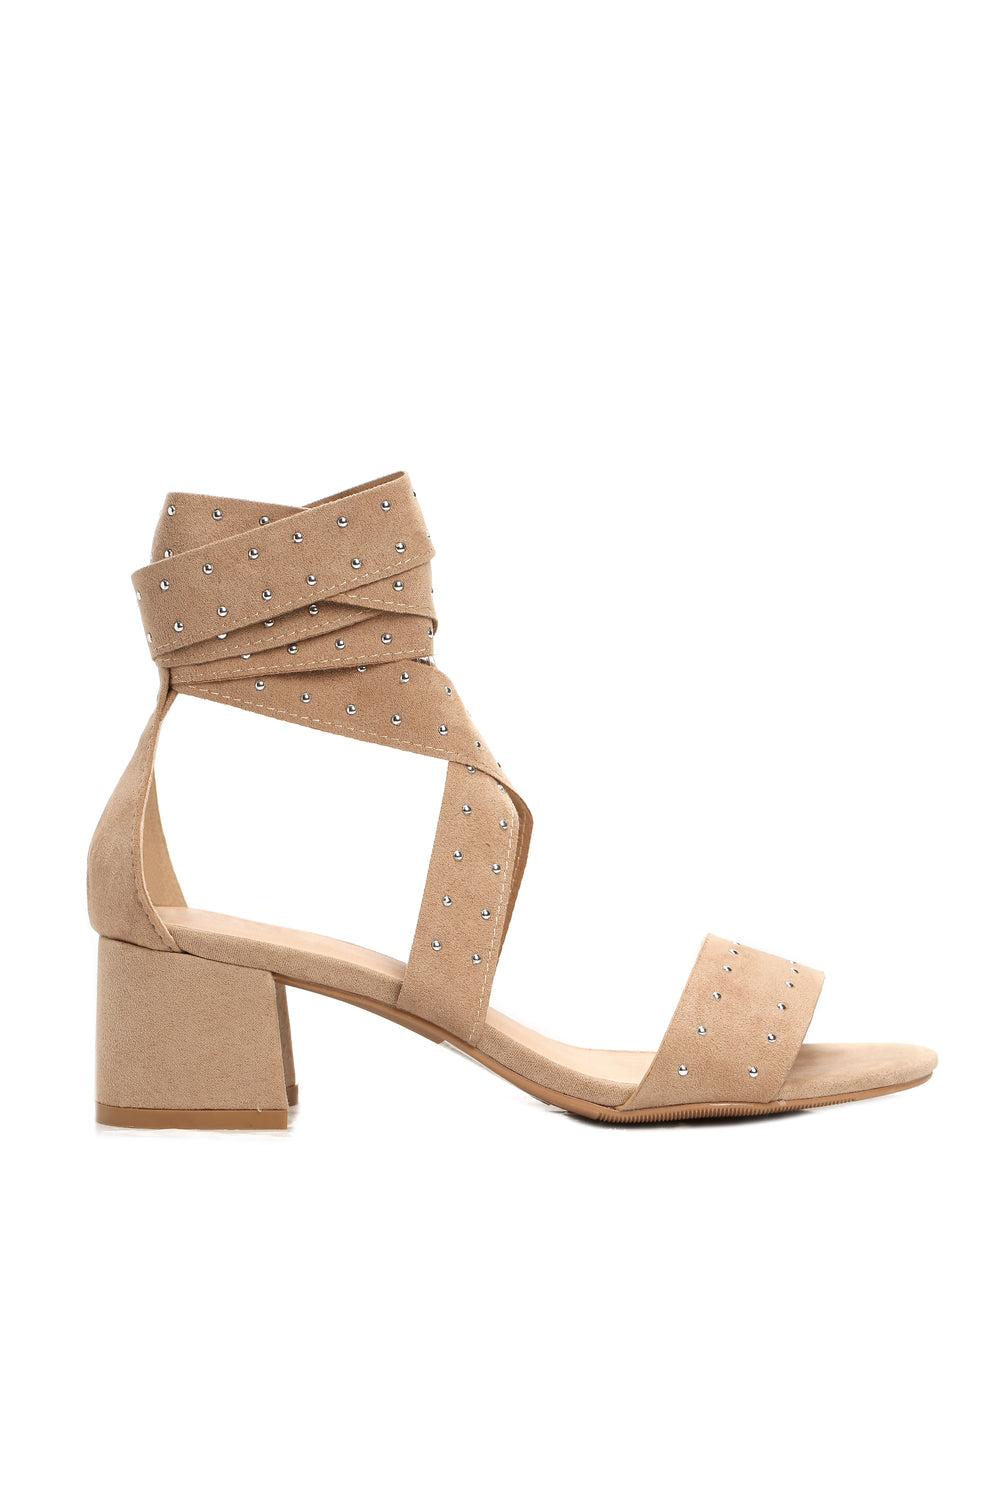 Professional Wrapper Sandals - Taupe